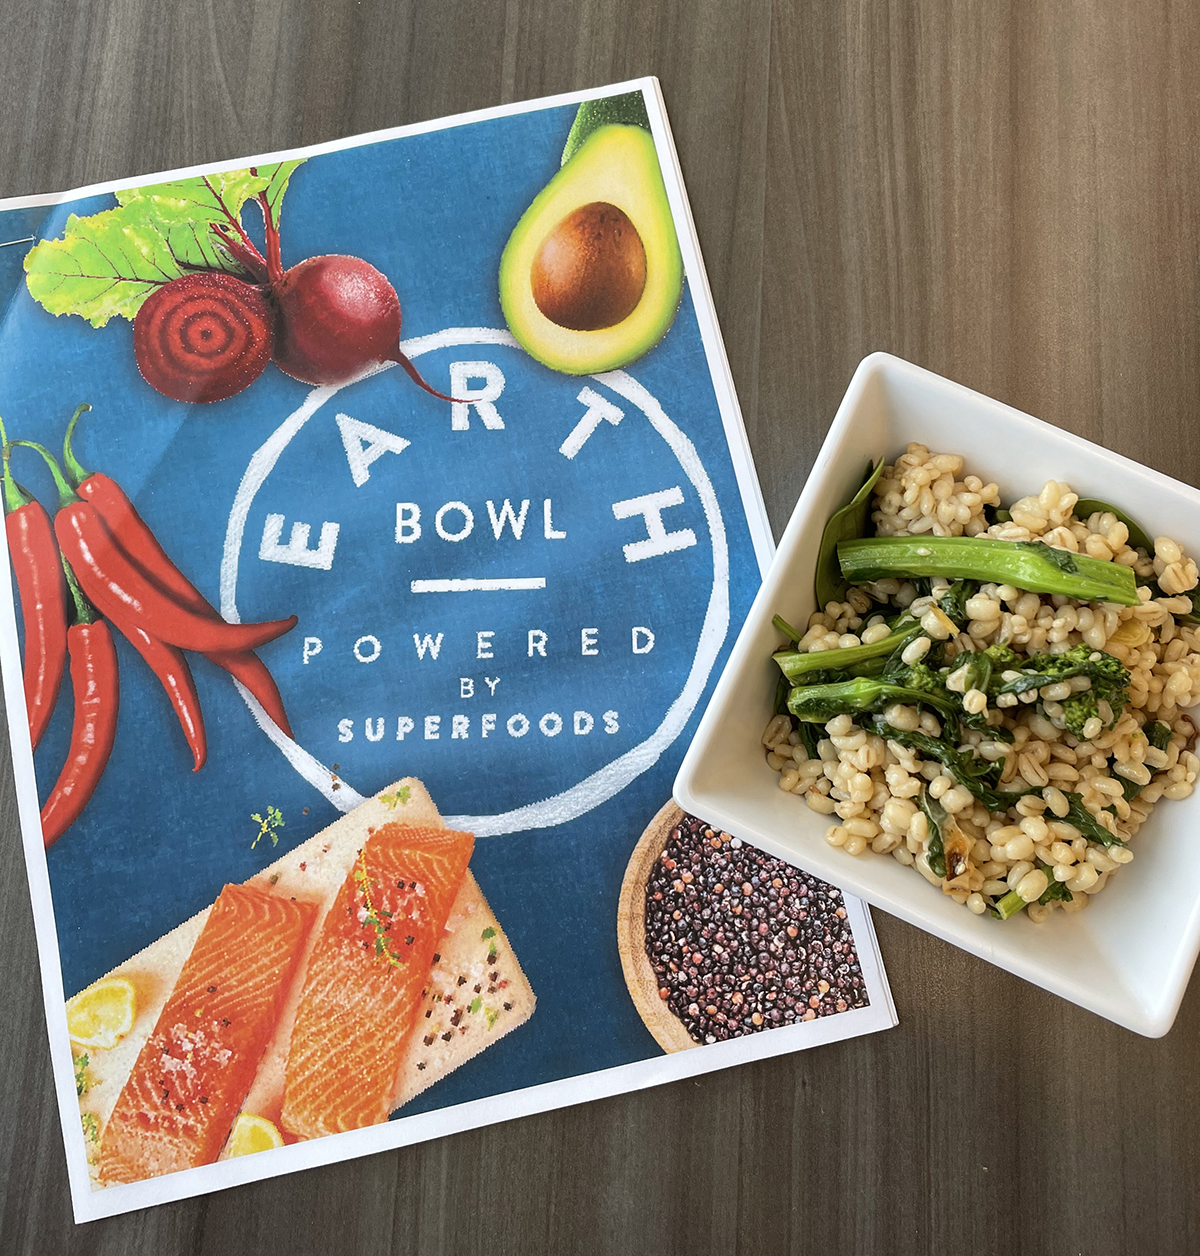 New Superfoods at Dine-in Make It Easy to Eat Healthy